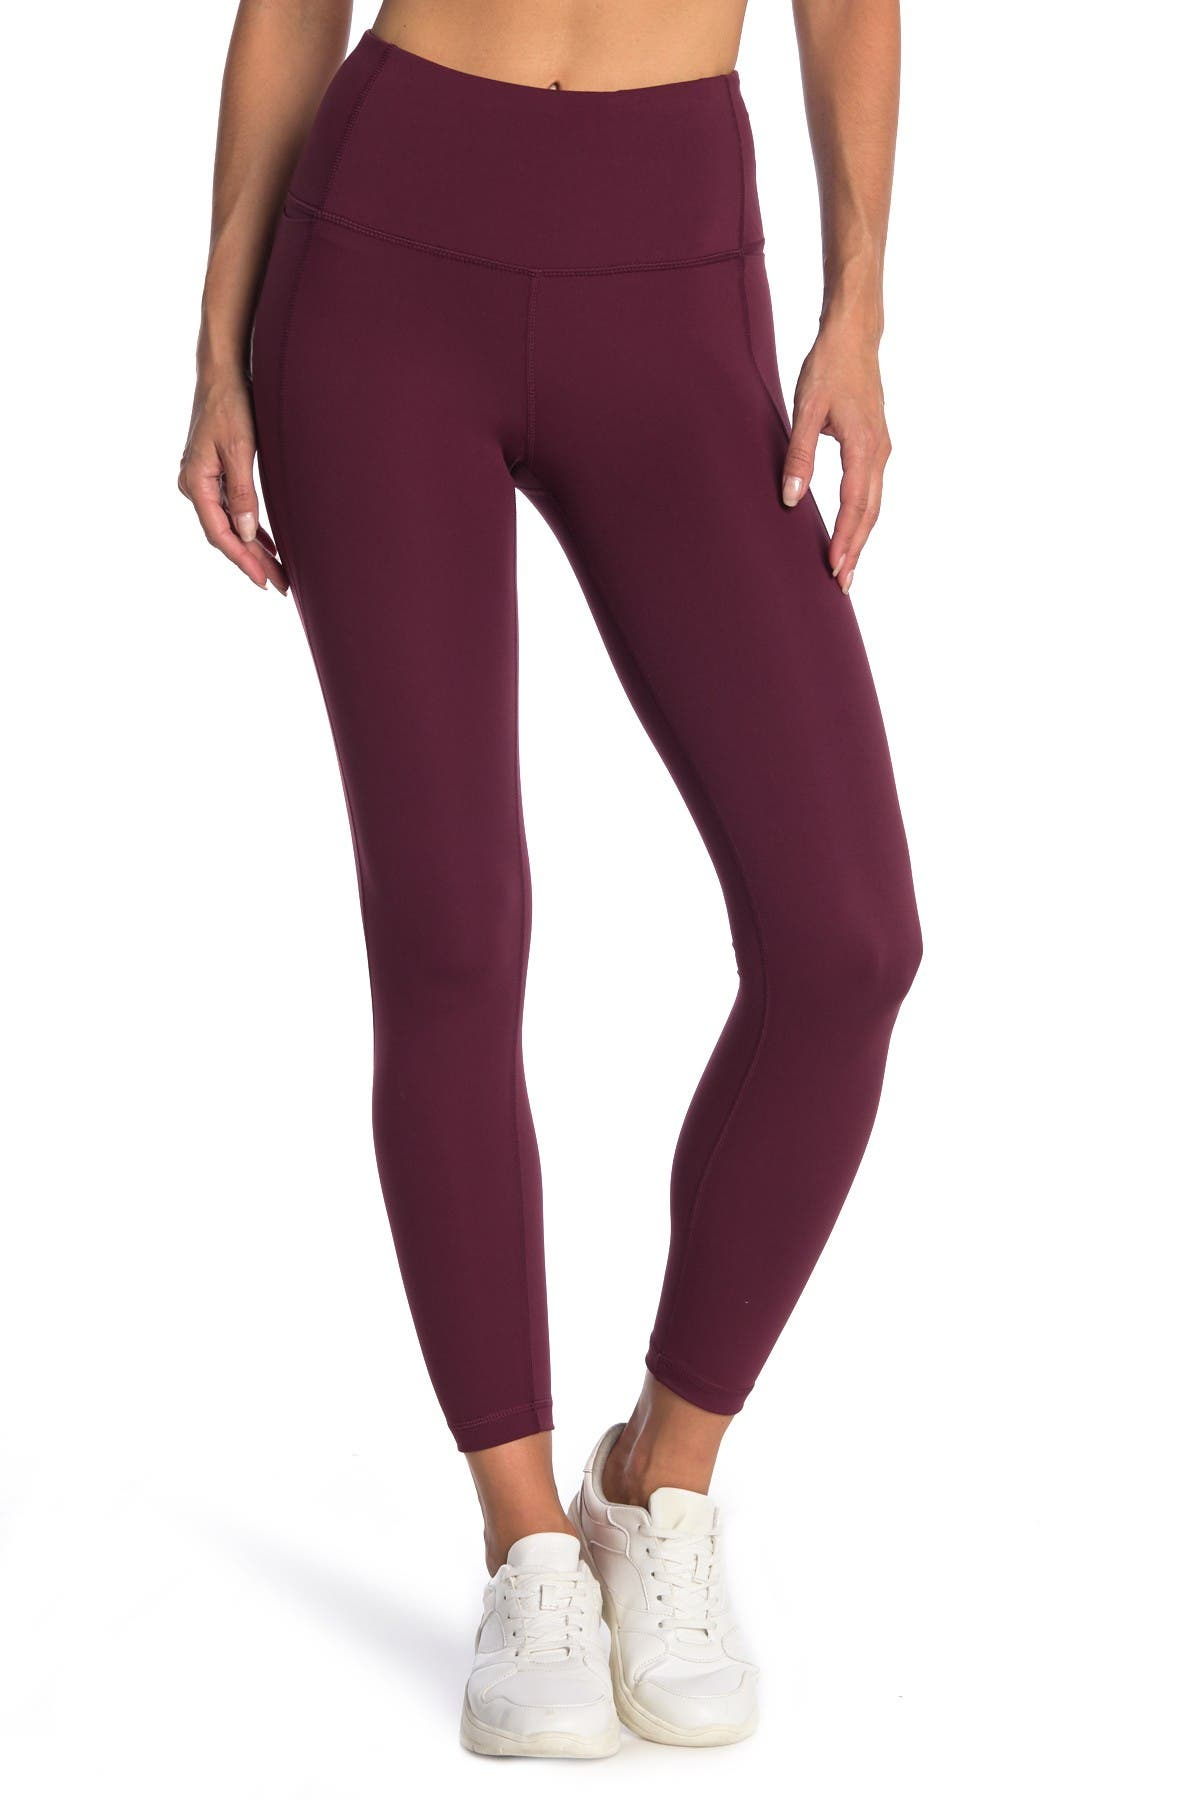 Image of 90 Degree By Reflex Lux High Rise Cropped Leggings